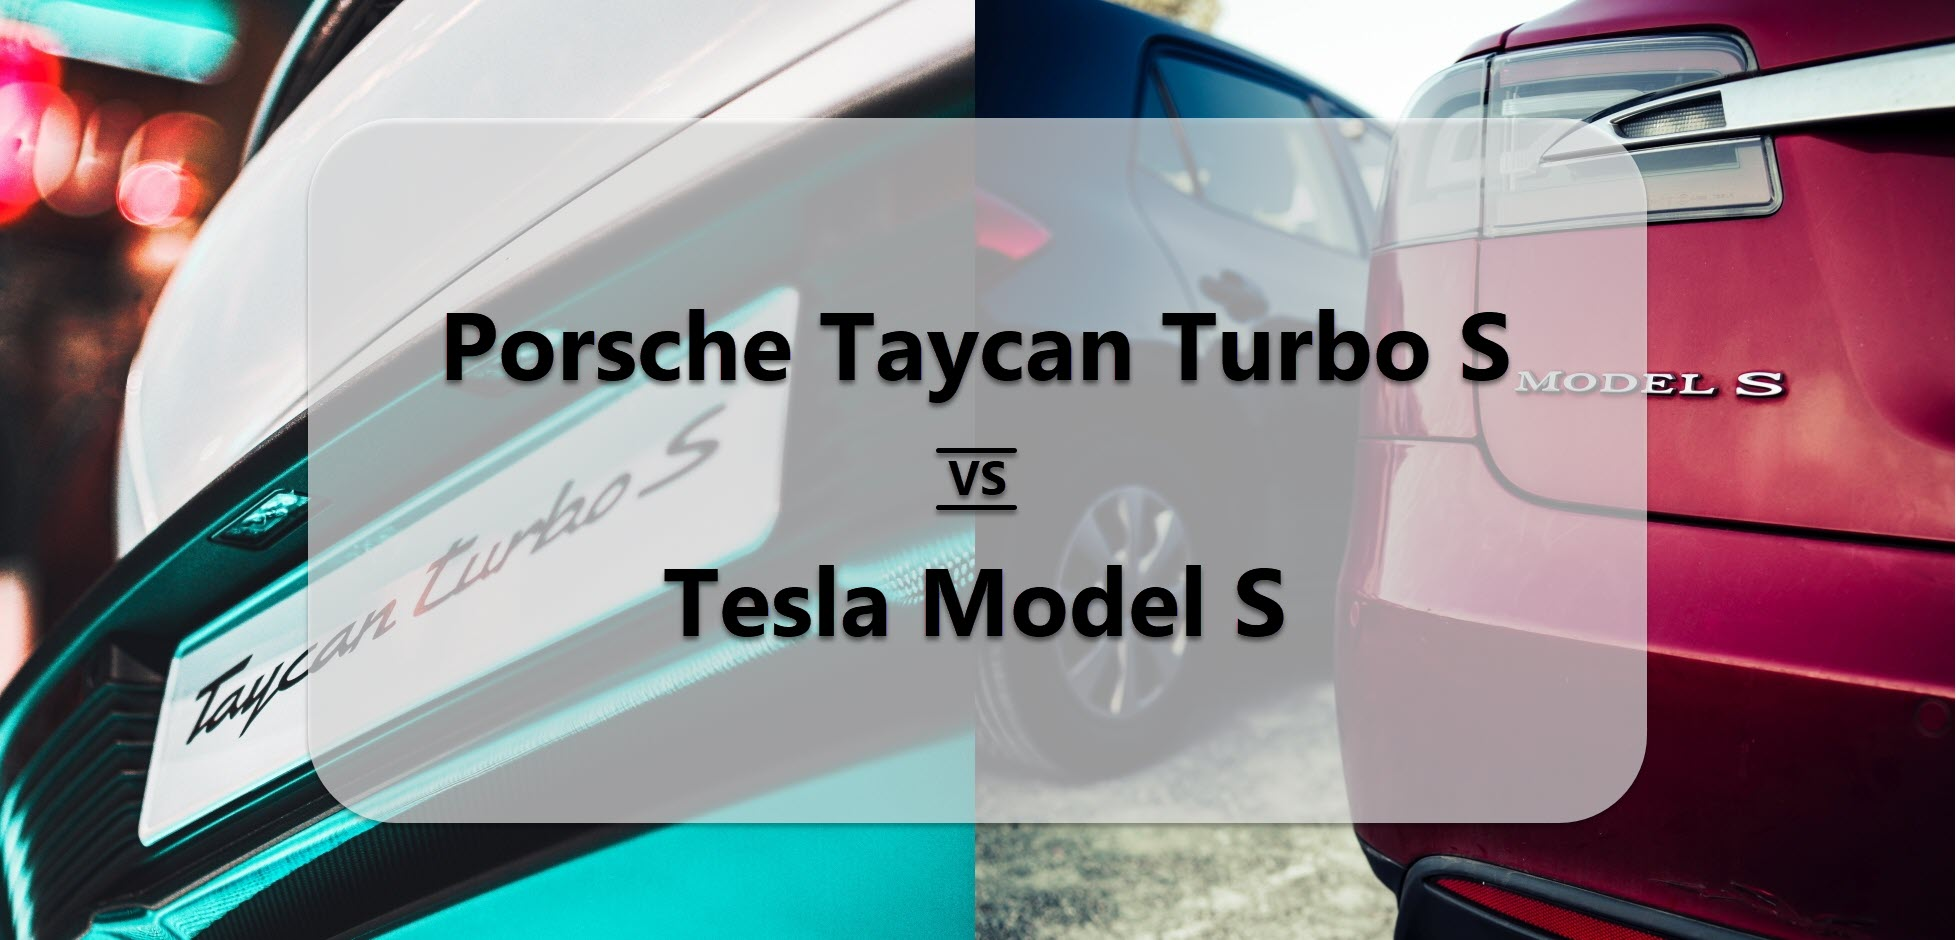 Porsche Taycan Turbo S vs Tesla Model S : The EV Rivalry